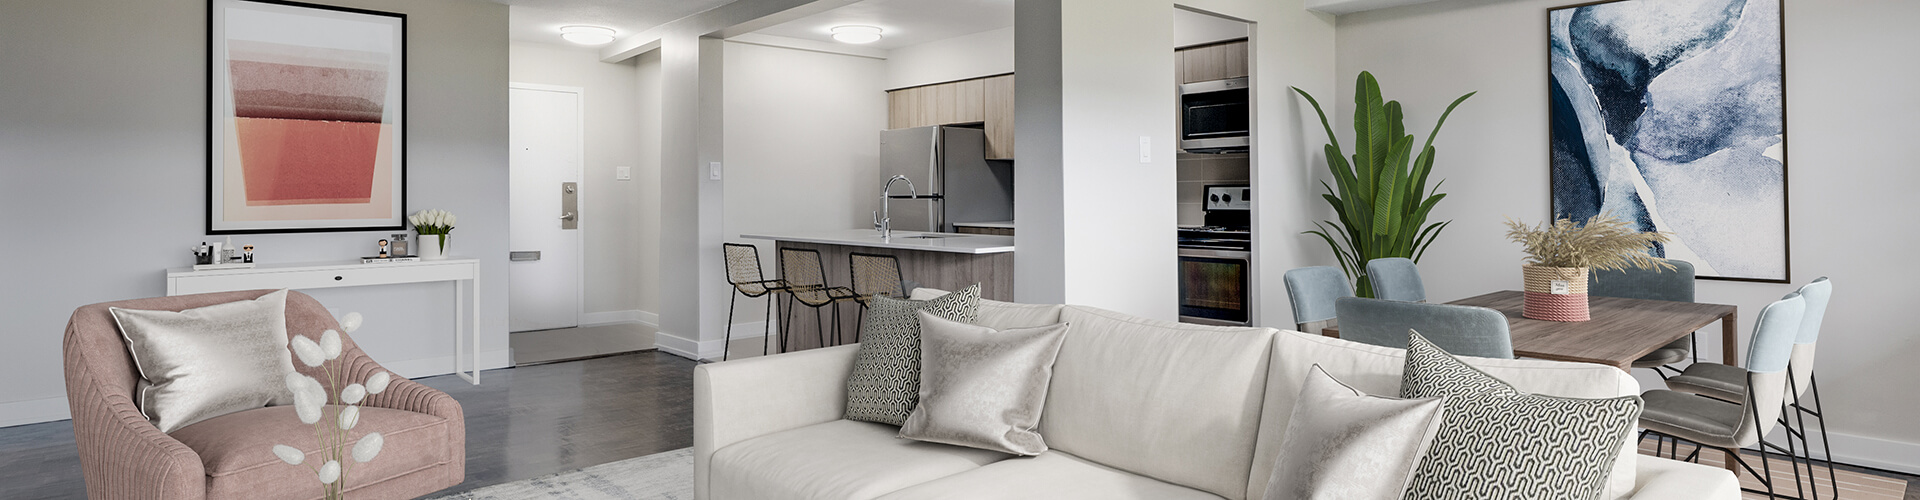 Luminous living room at Leslie York Mills Apartments in Toronto. Rent with Minto Apartments.